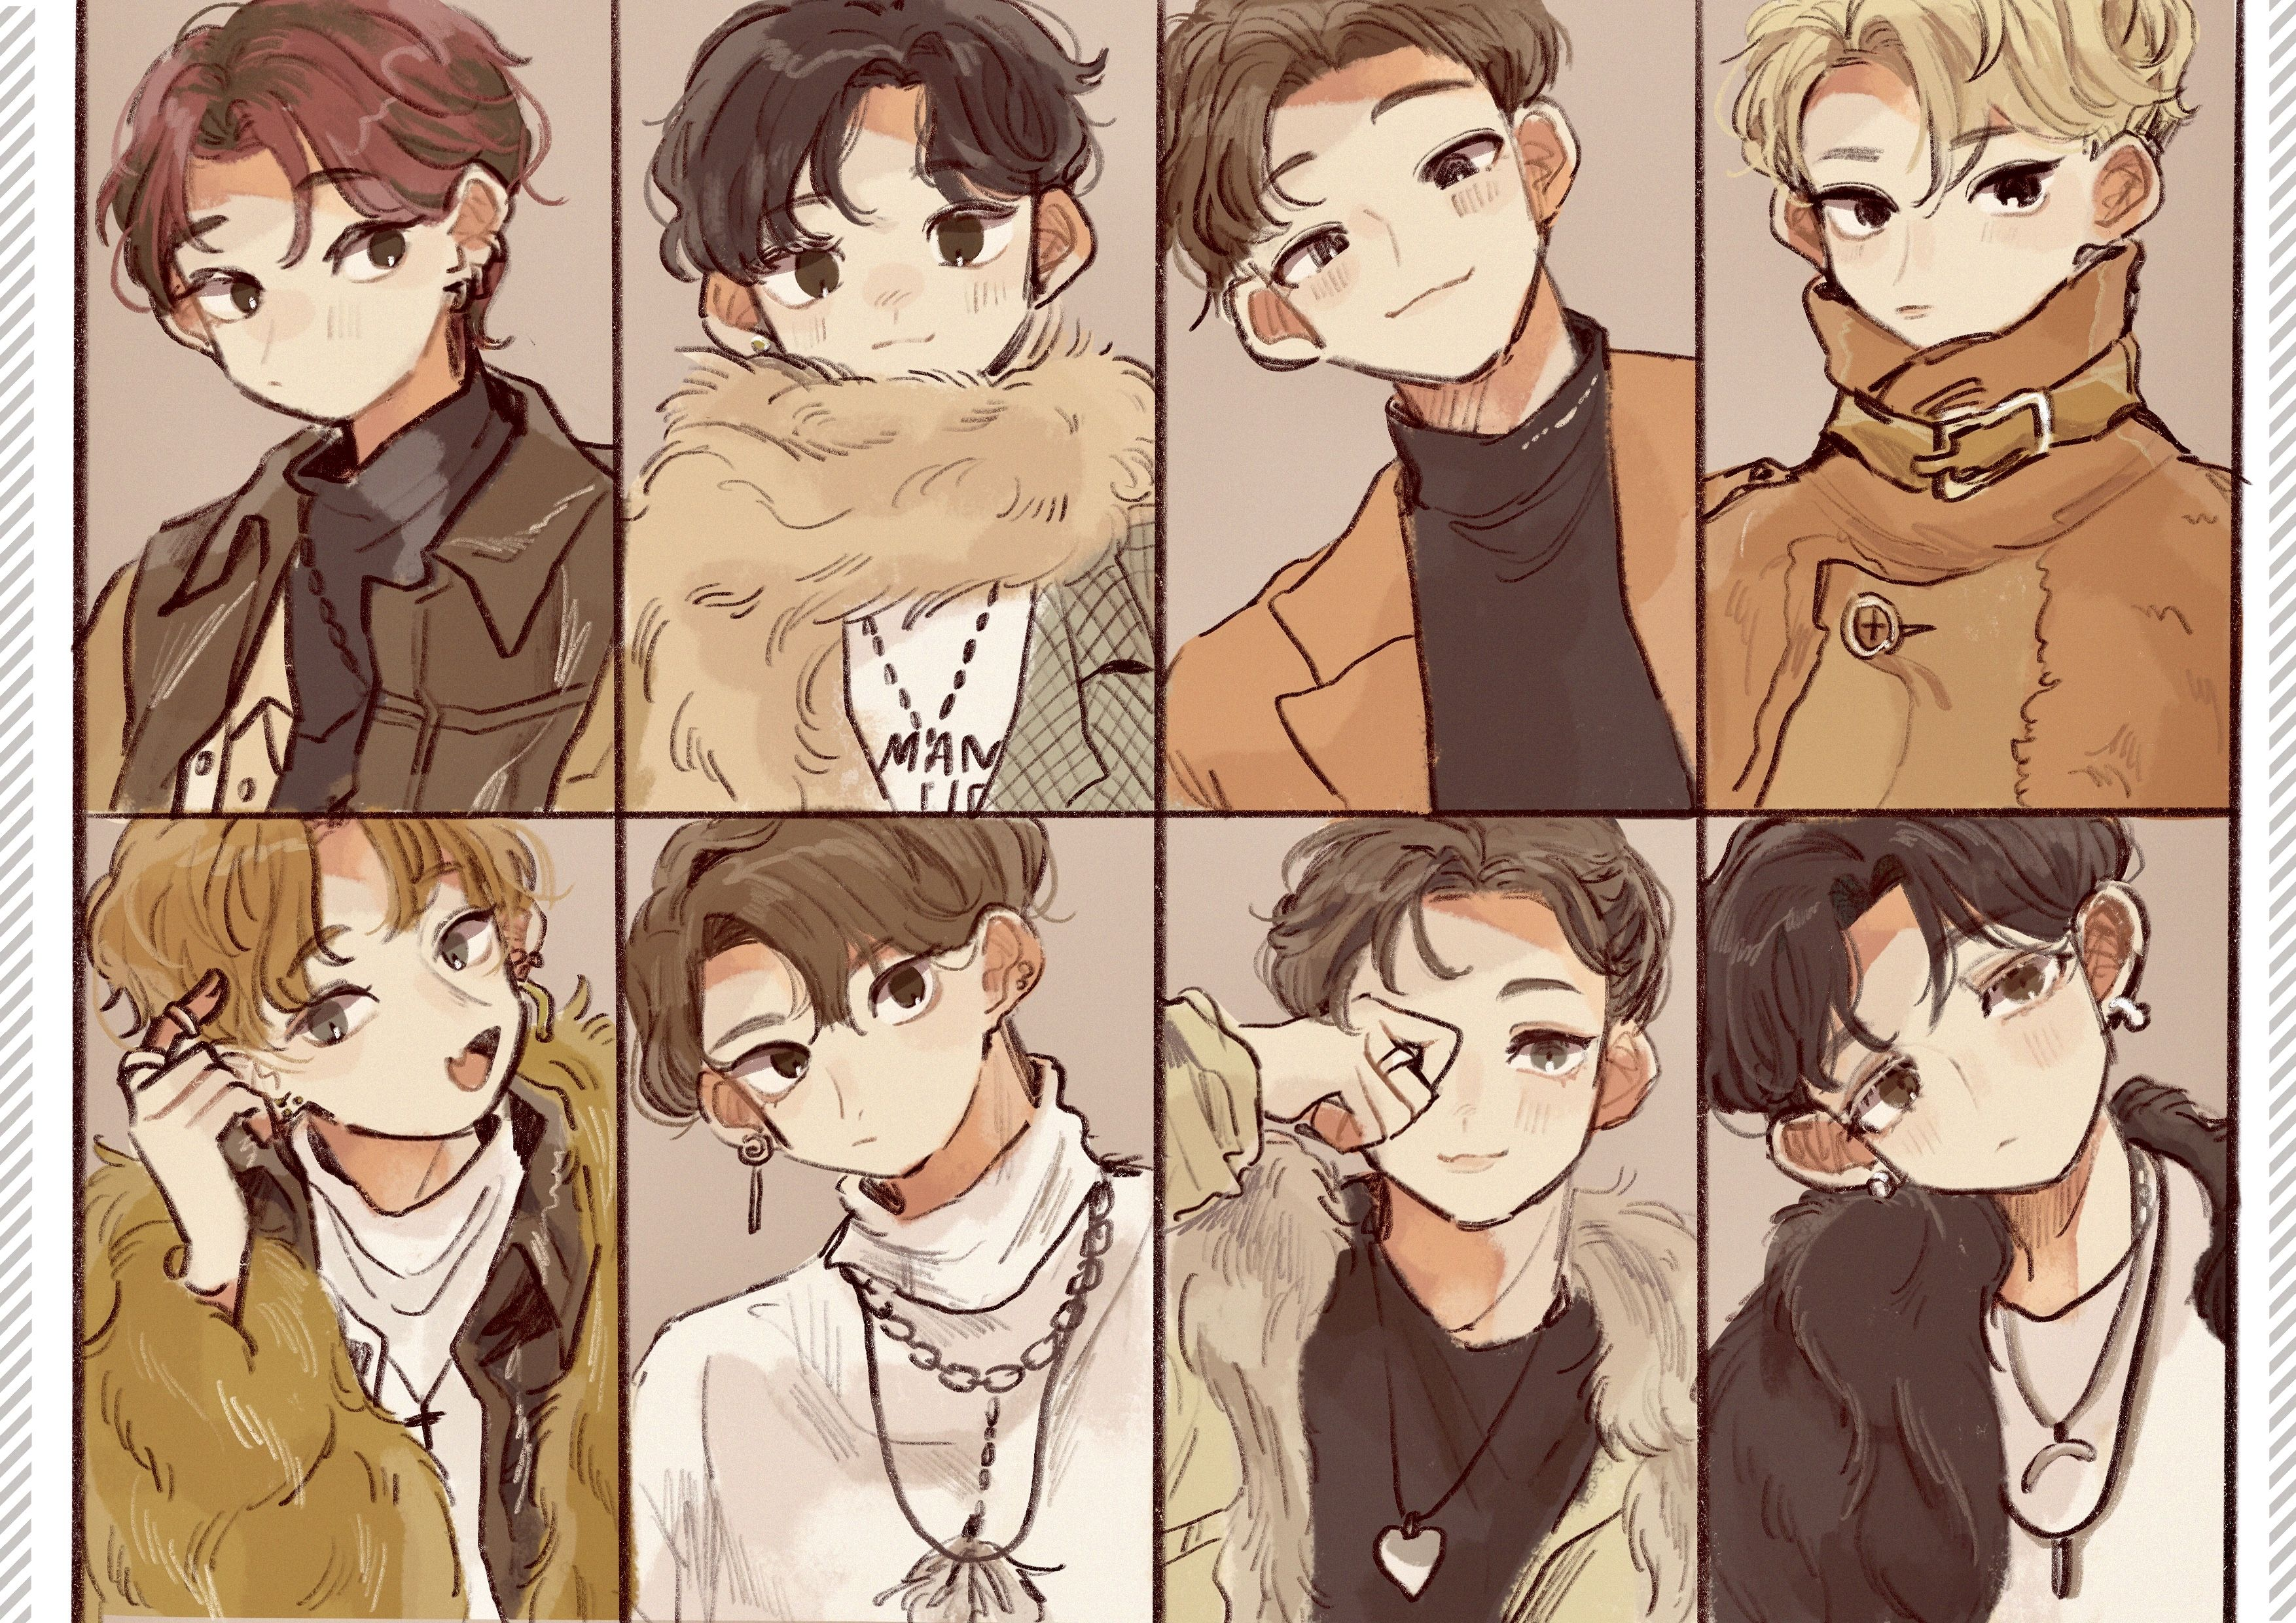 M On Twitter Kpop Fanart Cute Art Boy Art